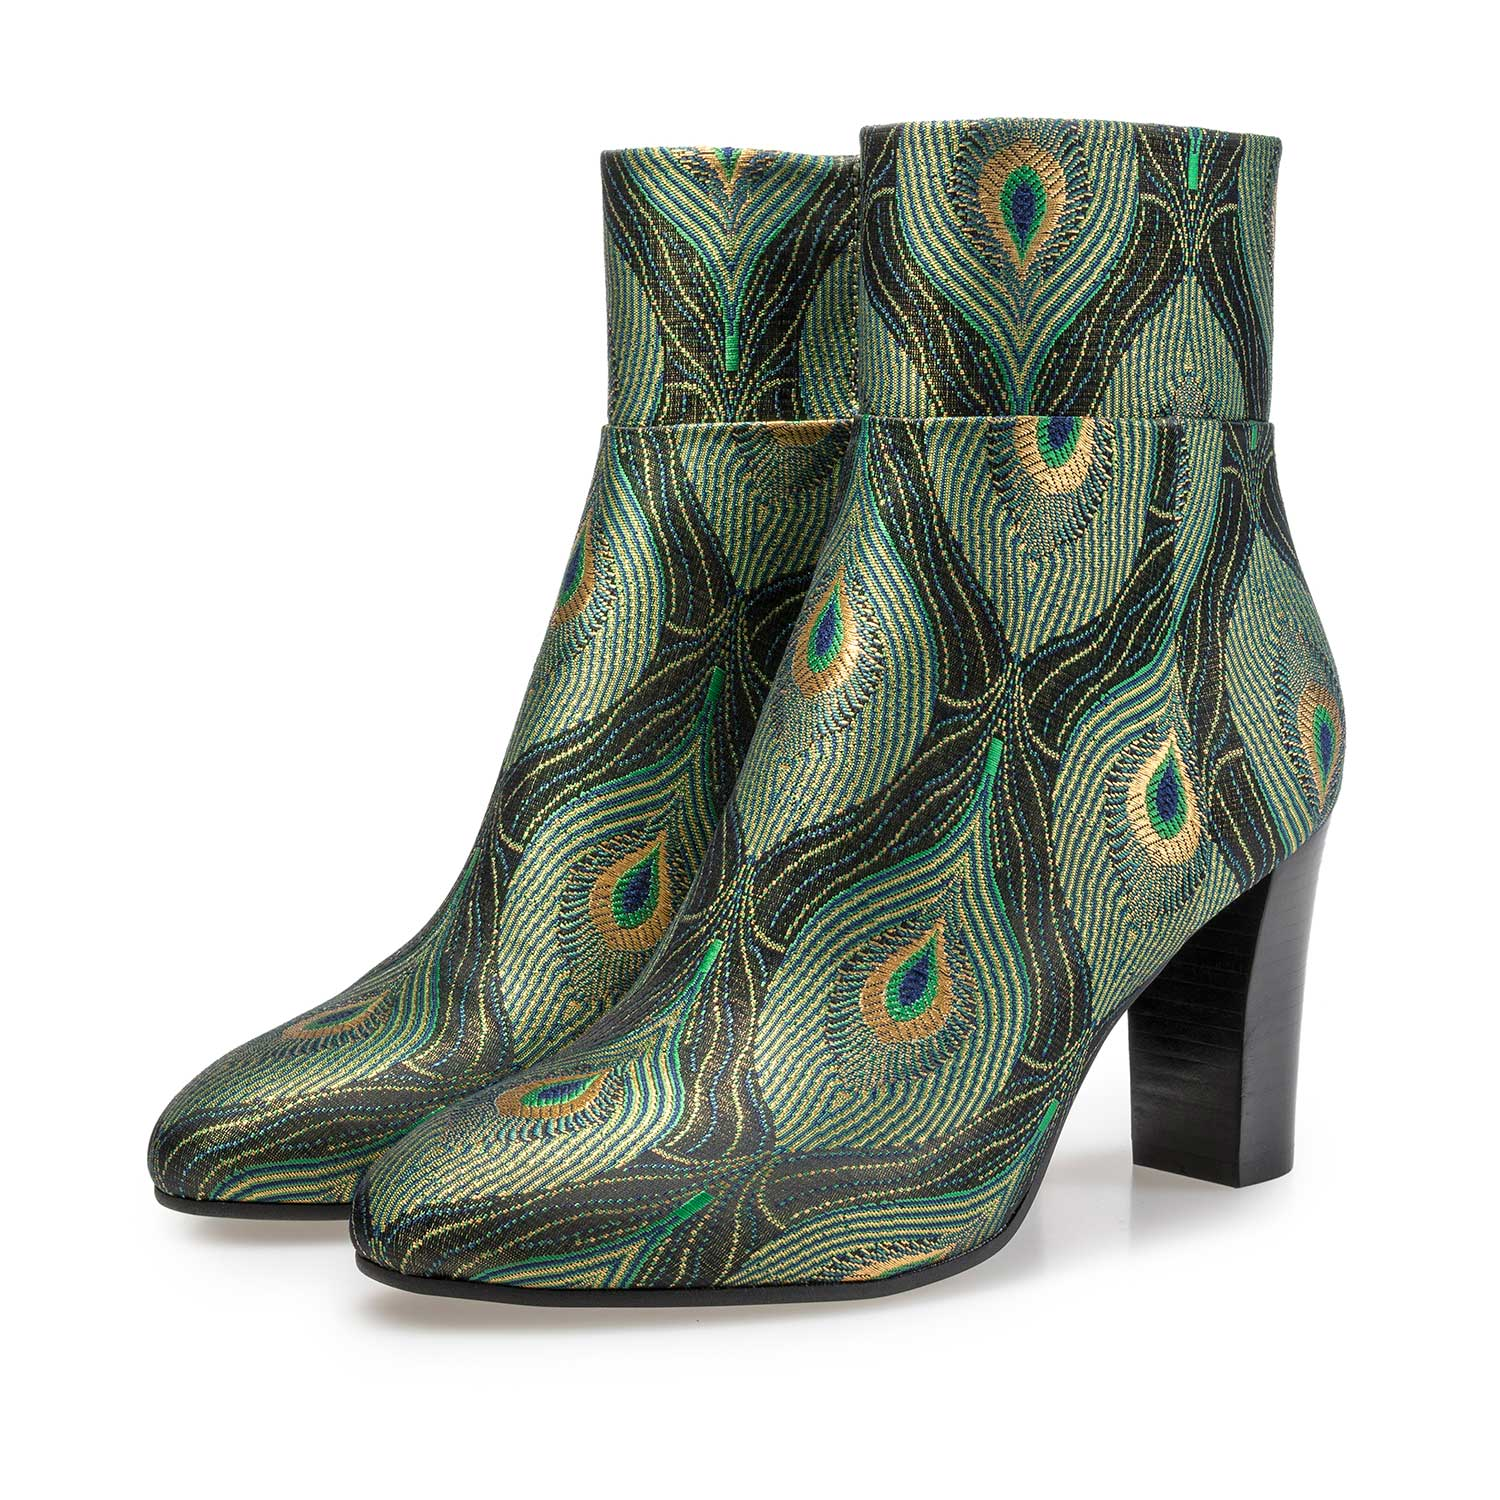 85196/09 - Ankle boots with peacock print